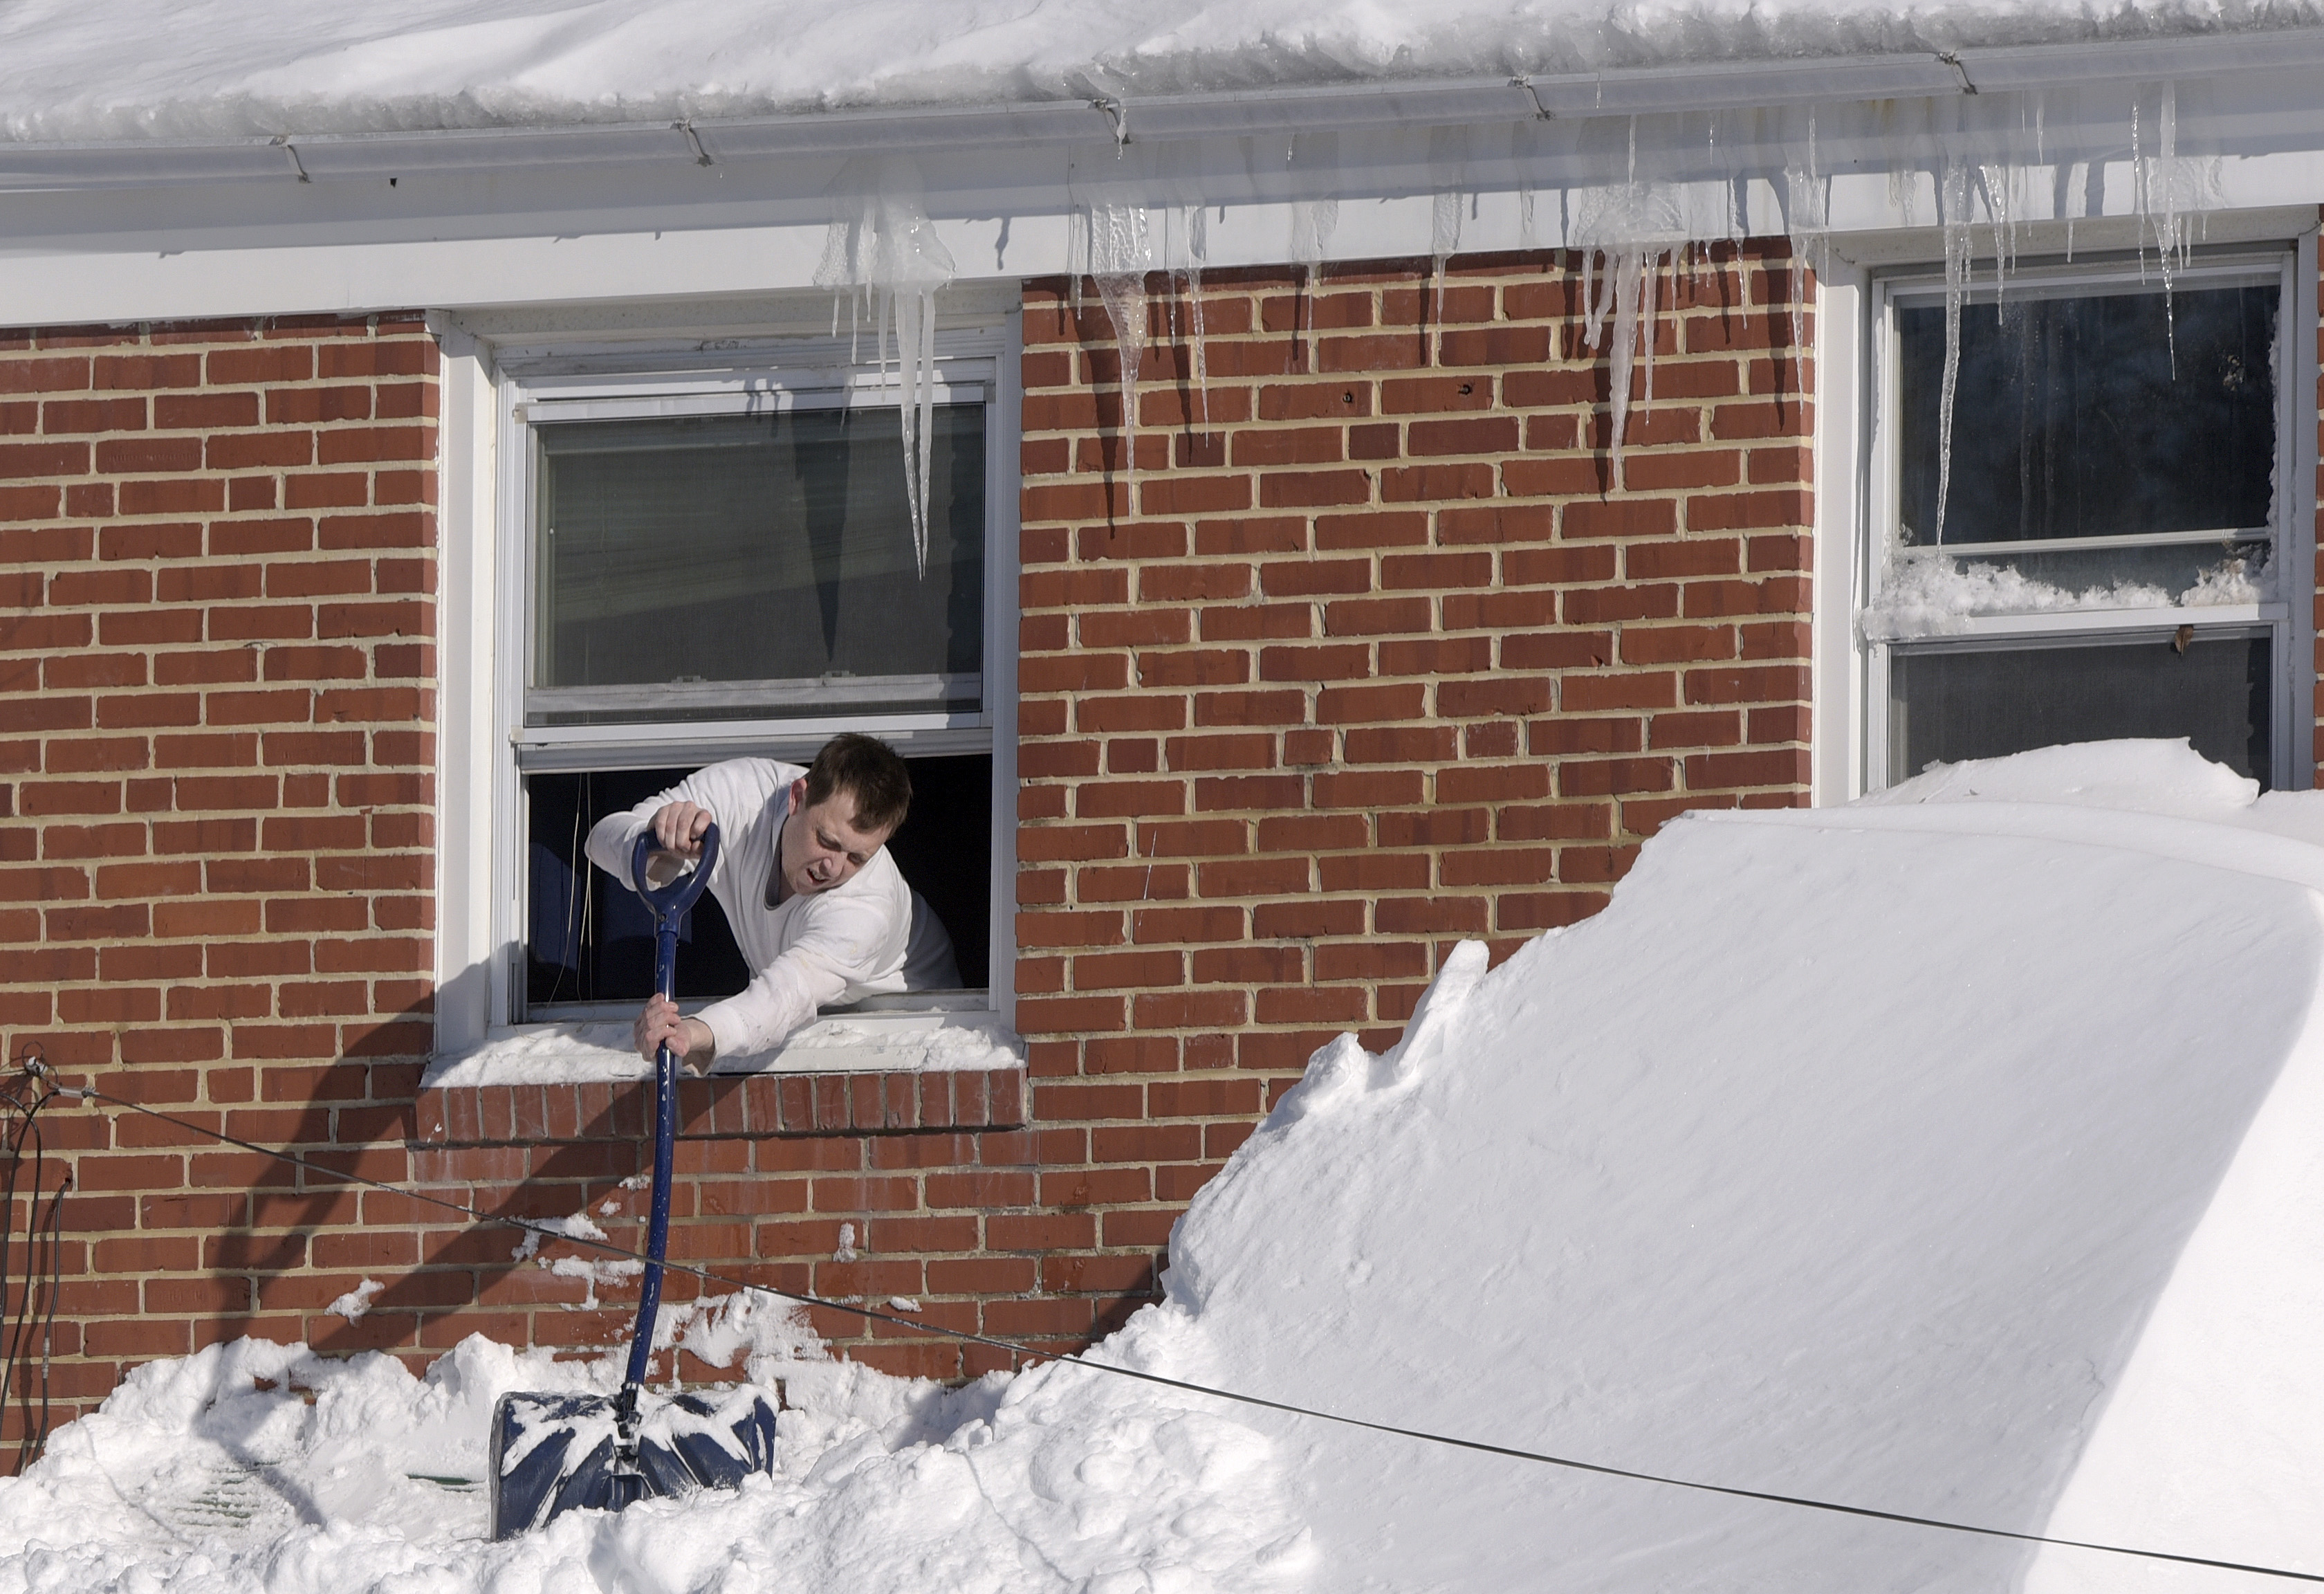 Man-clearing-snow-off-house-awning-from-second-floor-window-Blizzard-Jan-2016-crop-AP_197529660047-Steve Ruark